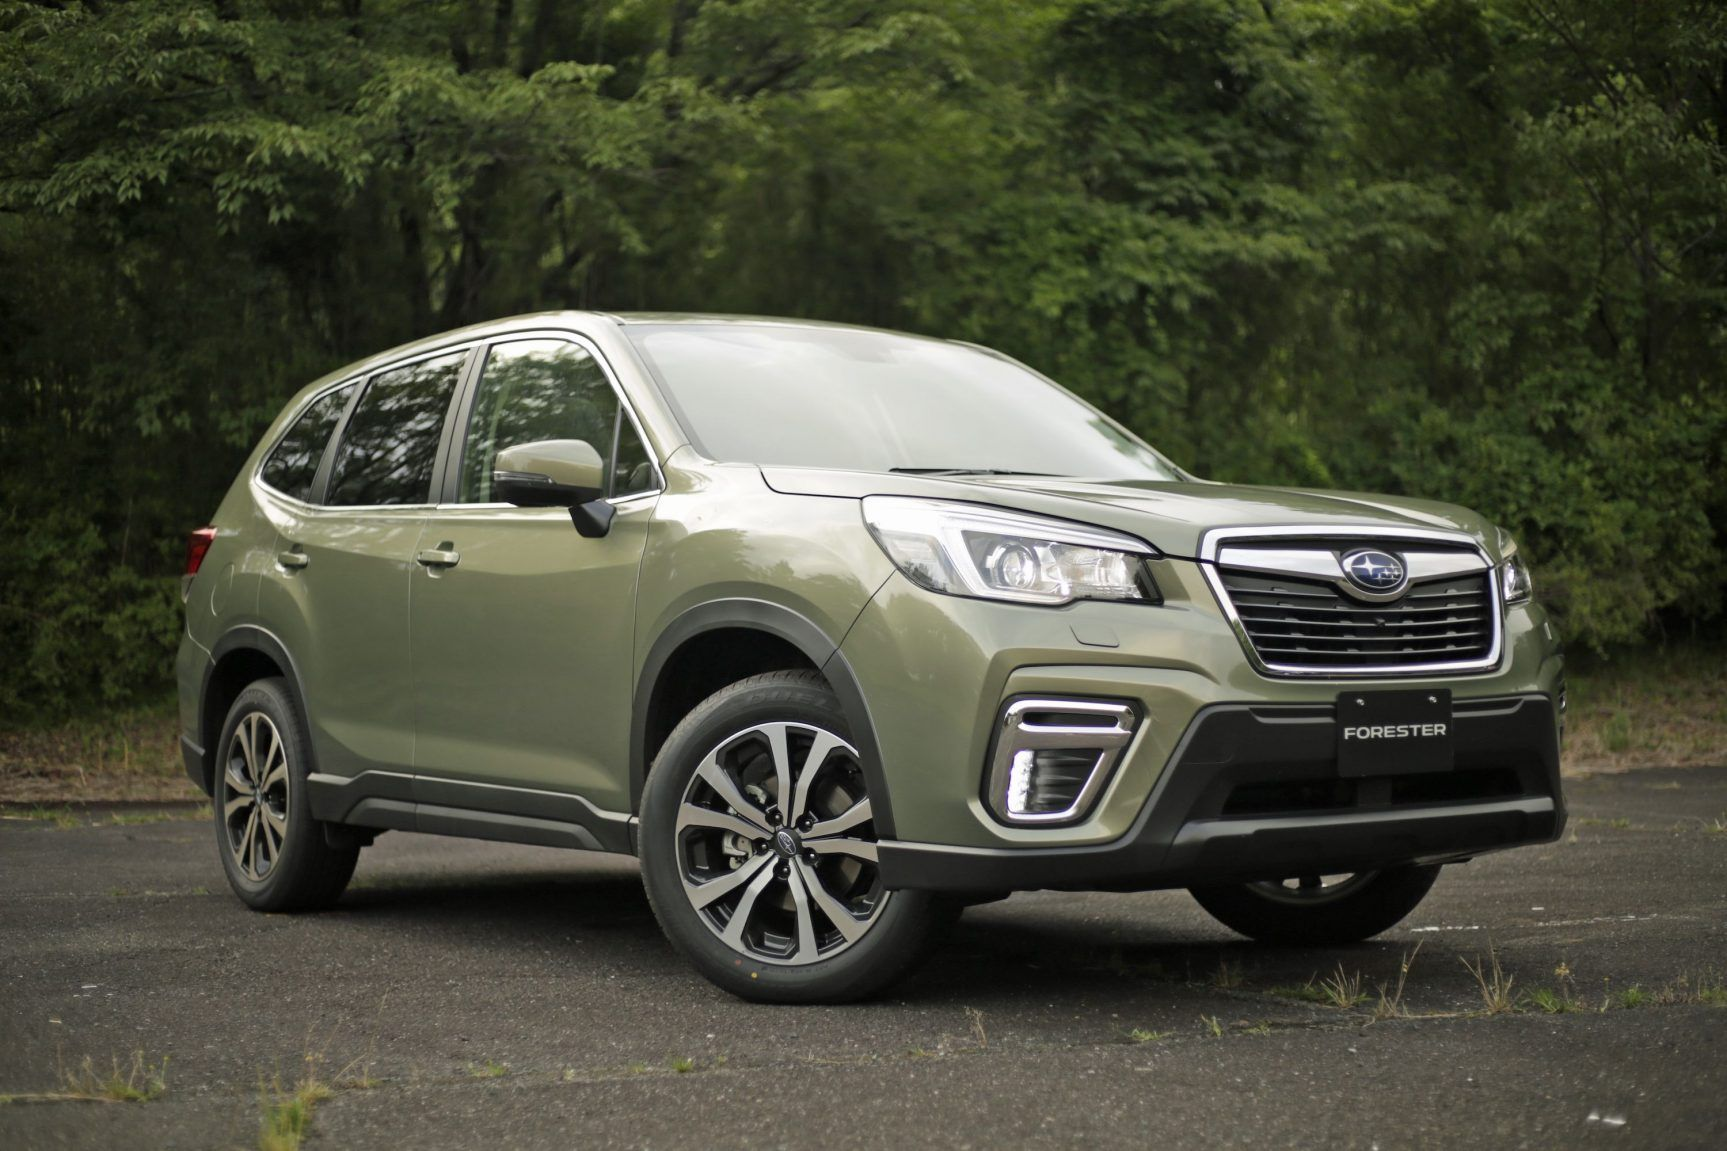 Subaru Reveals The 2020 Forester Is Including New Upgrades See What Enhancements And Changes Are Beginning The Compact Suv Subaru Subaru Forester Compact Suv